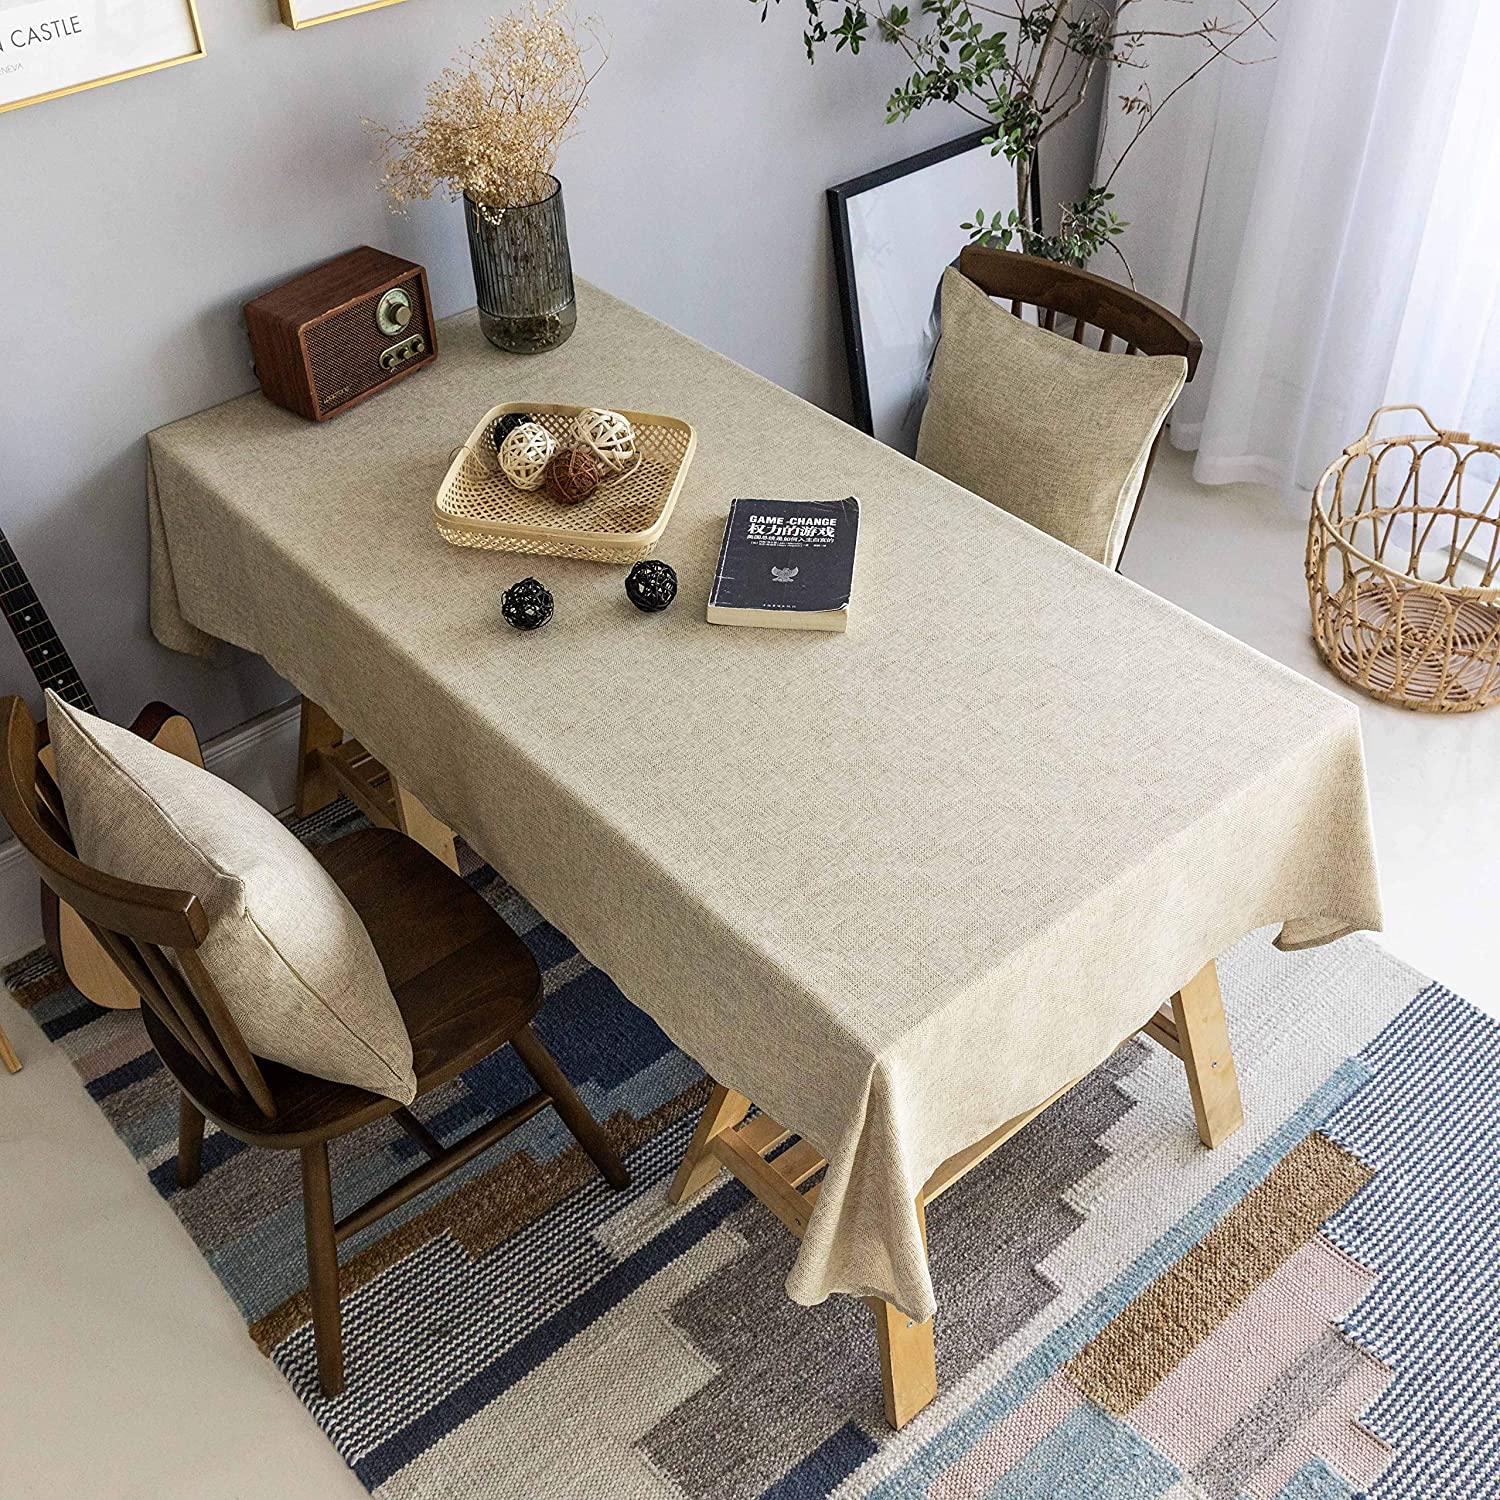 Home Brilliant Tablecloth Solid Soft Linen Farmhouse Checker Table Covers for Party Kitchen Indoor Outdoor Table Clothes for Dining Table, 52x86 inch, Natural